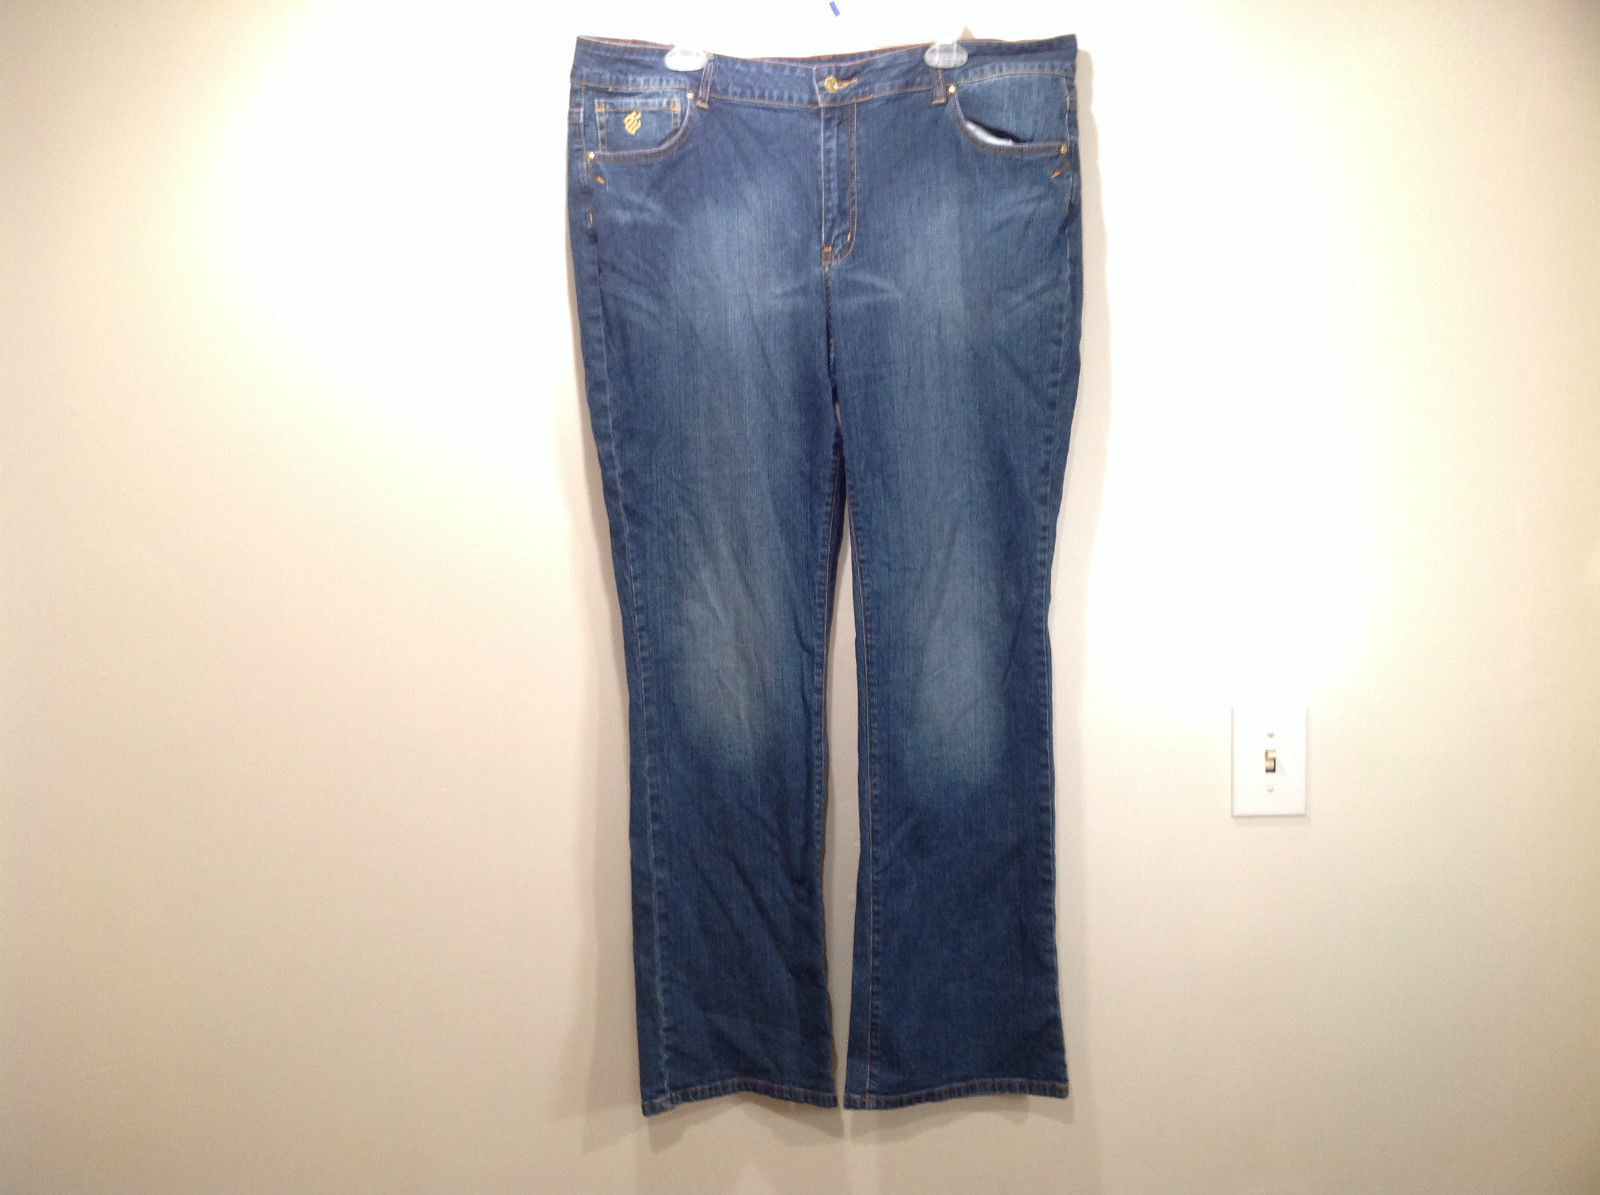 Rocawear Size 22 Stretchy Blue Jeans Excellent Condition Zipper Button Closure